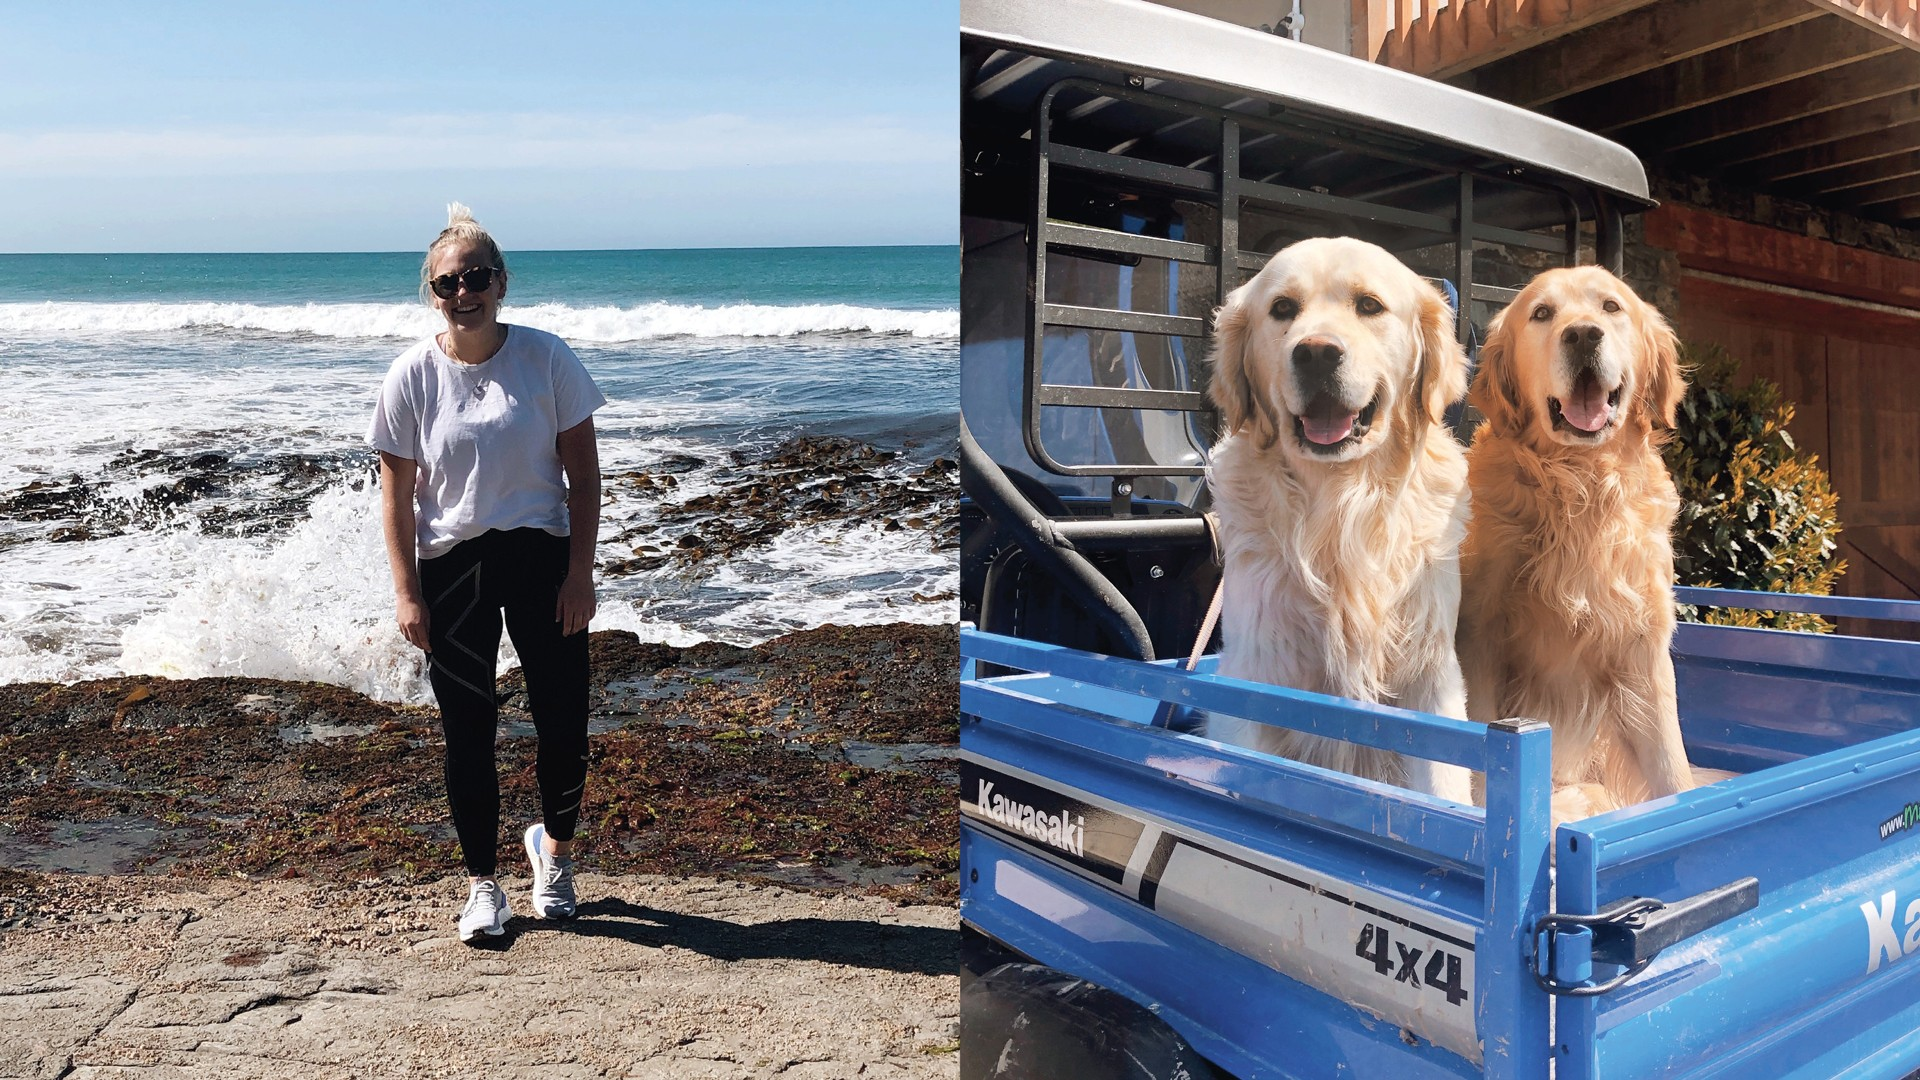 Emma Turner at the beach (left) and Emma's family dogs (right)